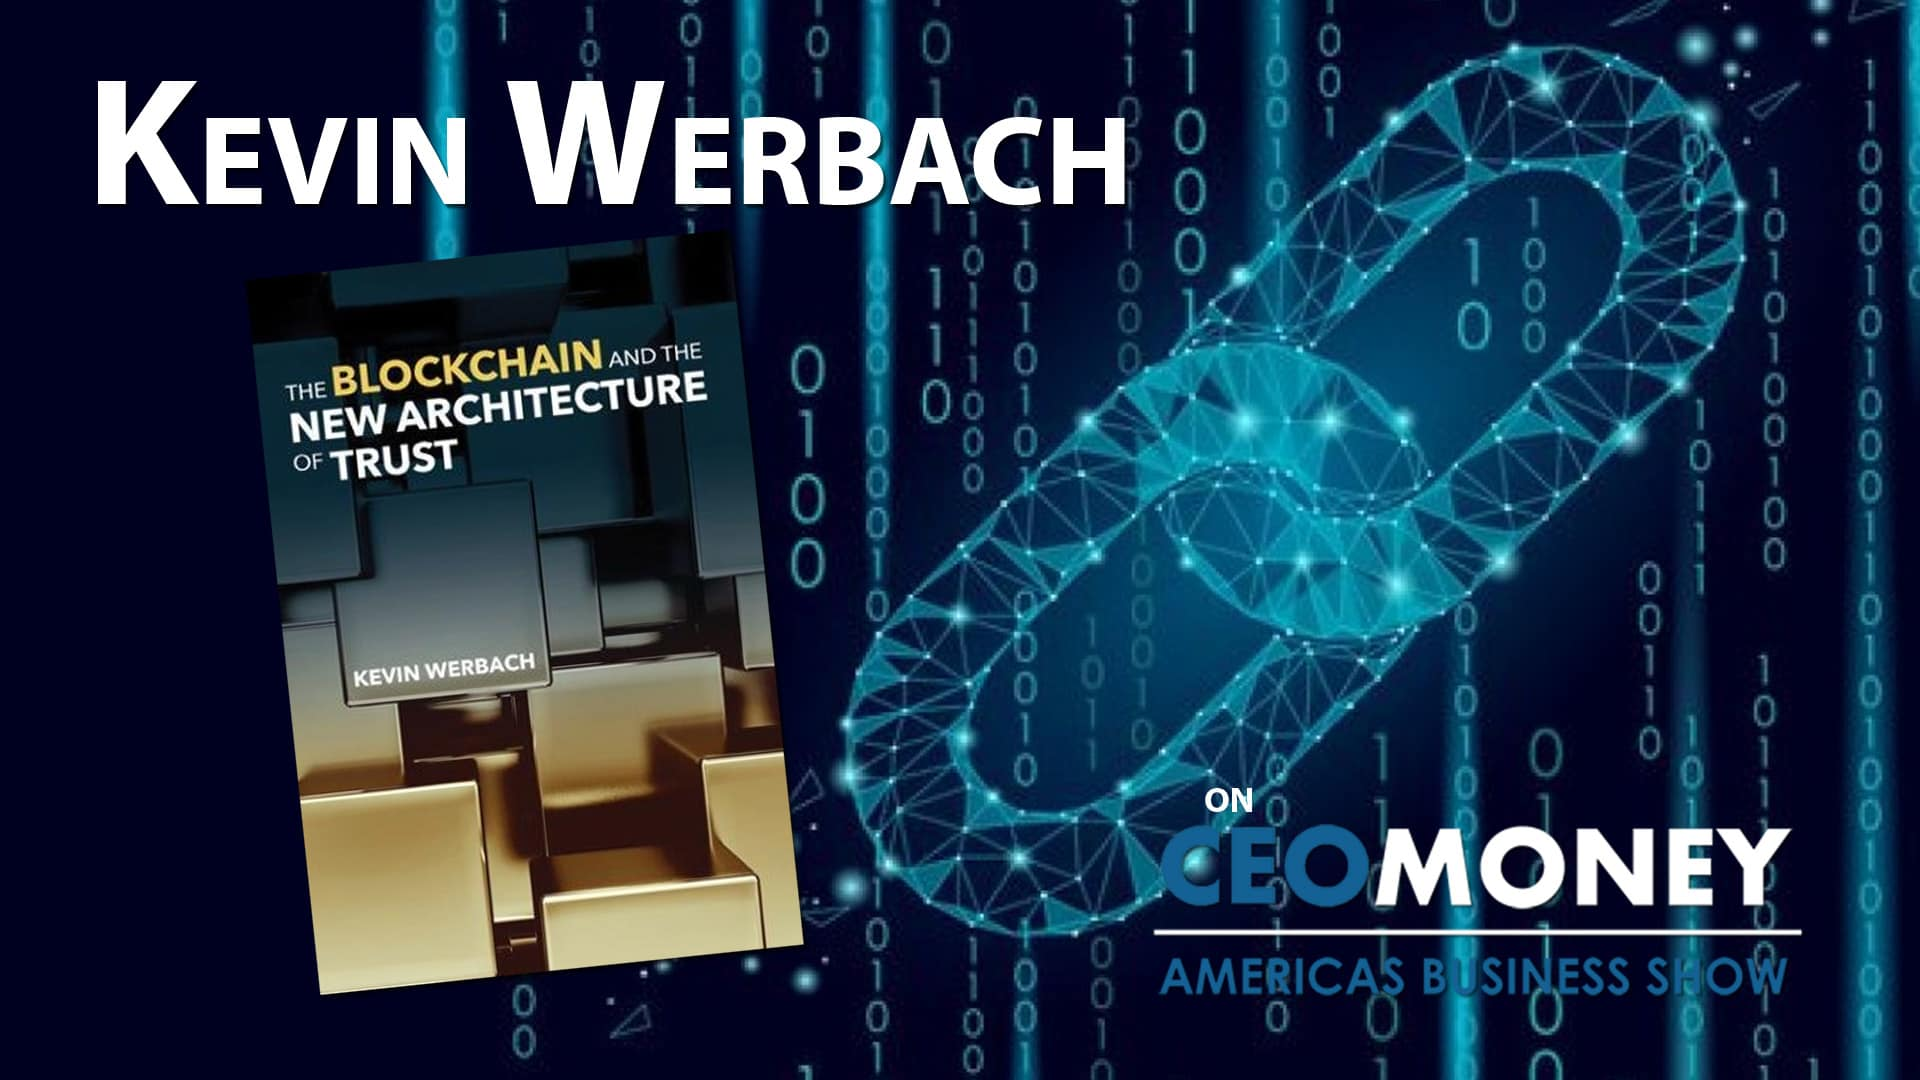 Author Kevin Werbach writes about how blockchain is becoming adopted in mainstream business and law